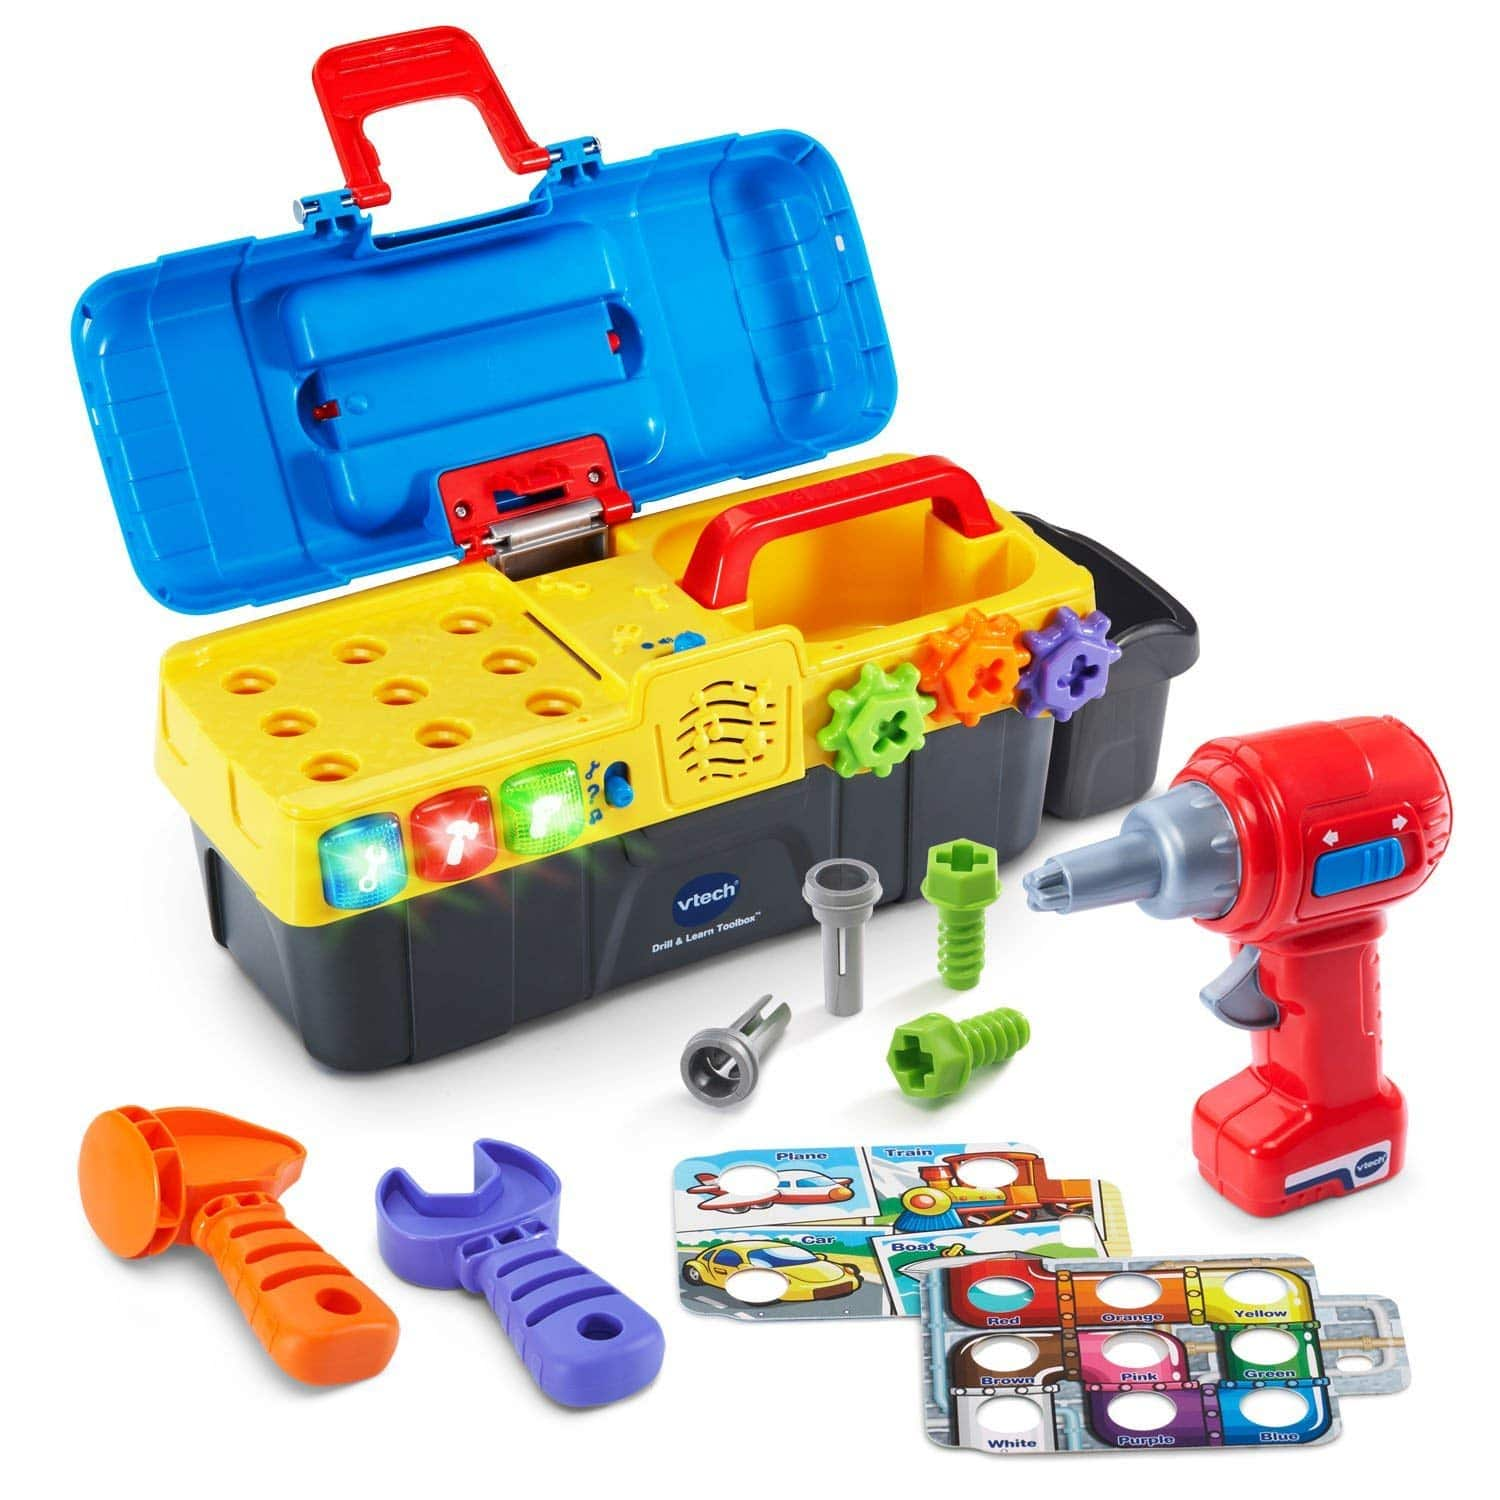 Sensational 10 Best Toy Tool Set Reviews 2019 A Moms Ultimate Buying Ibusinesslaw Wood Chair Design Ideas Ibusinesslaworg